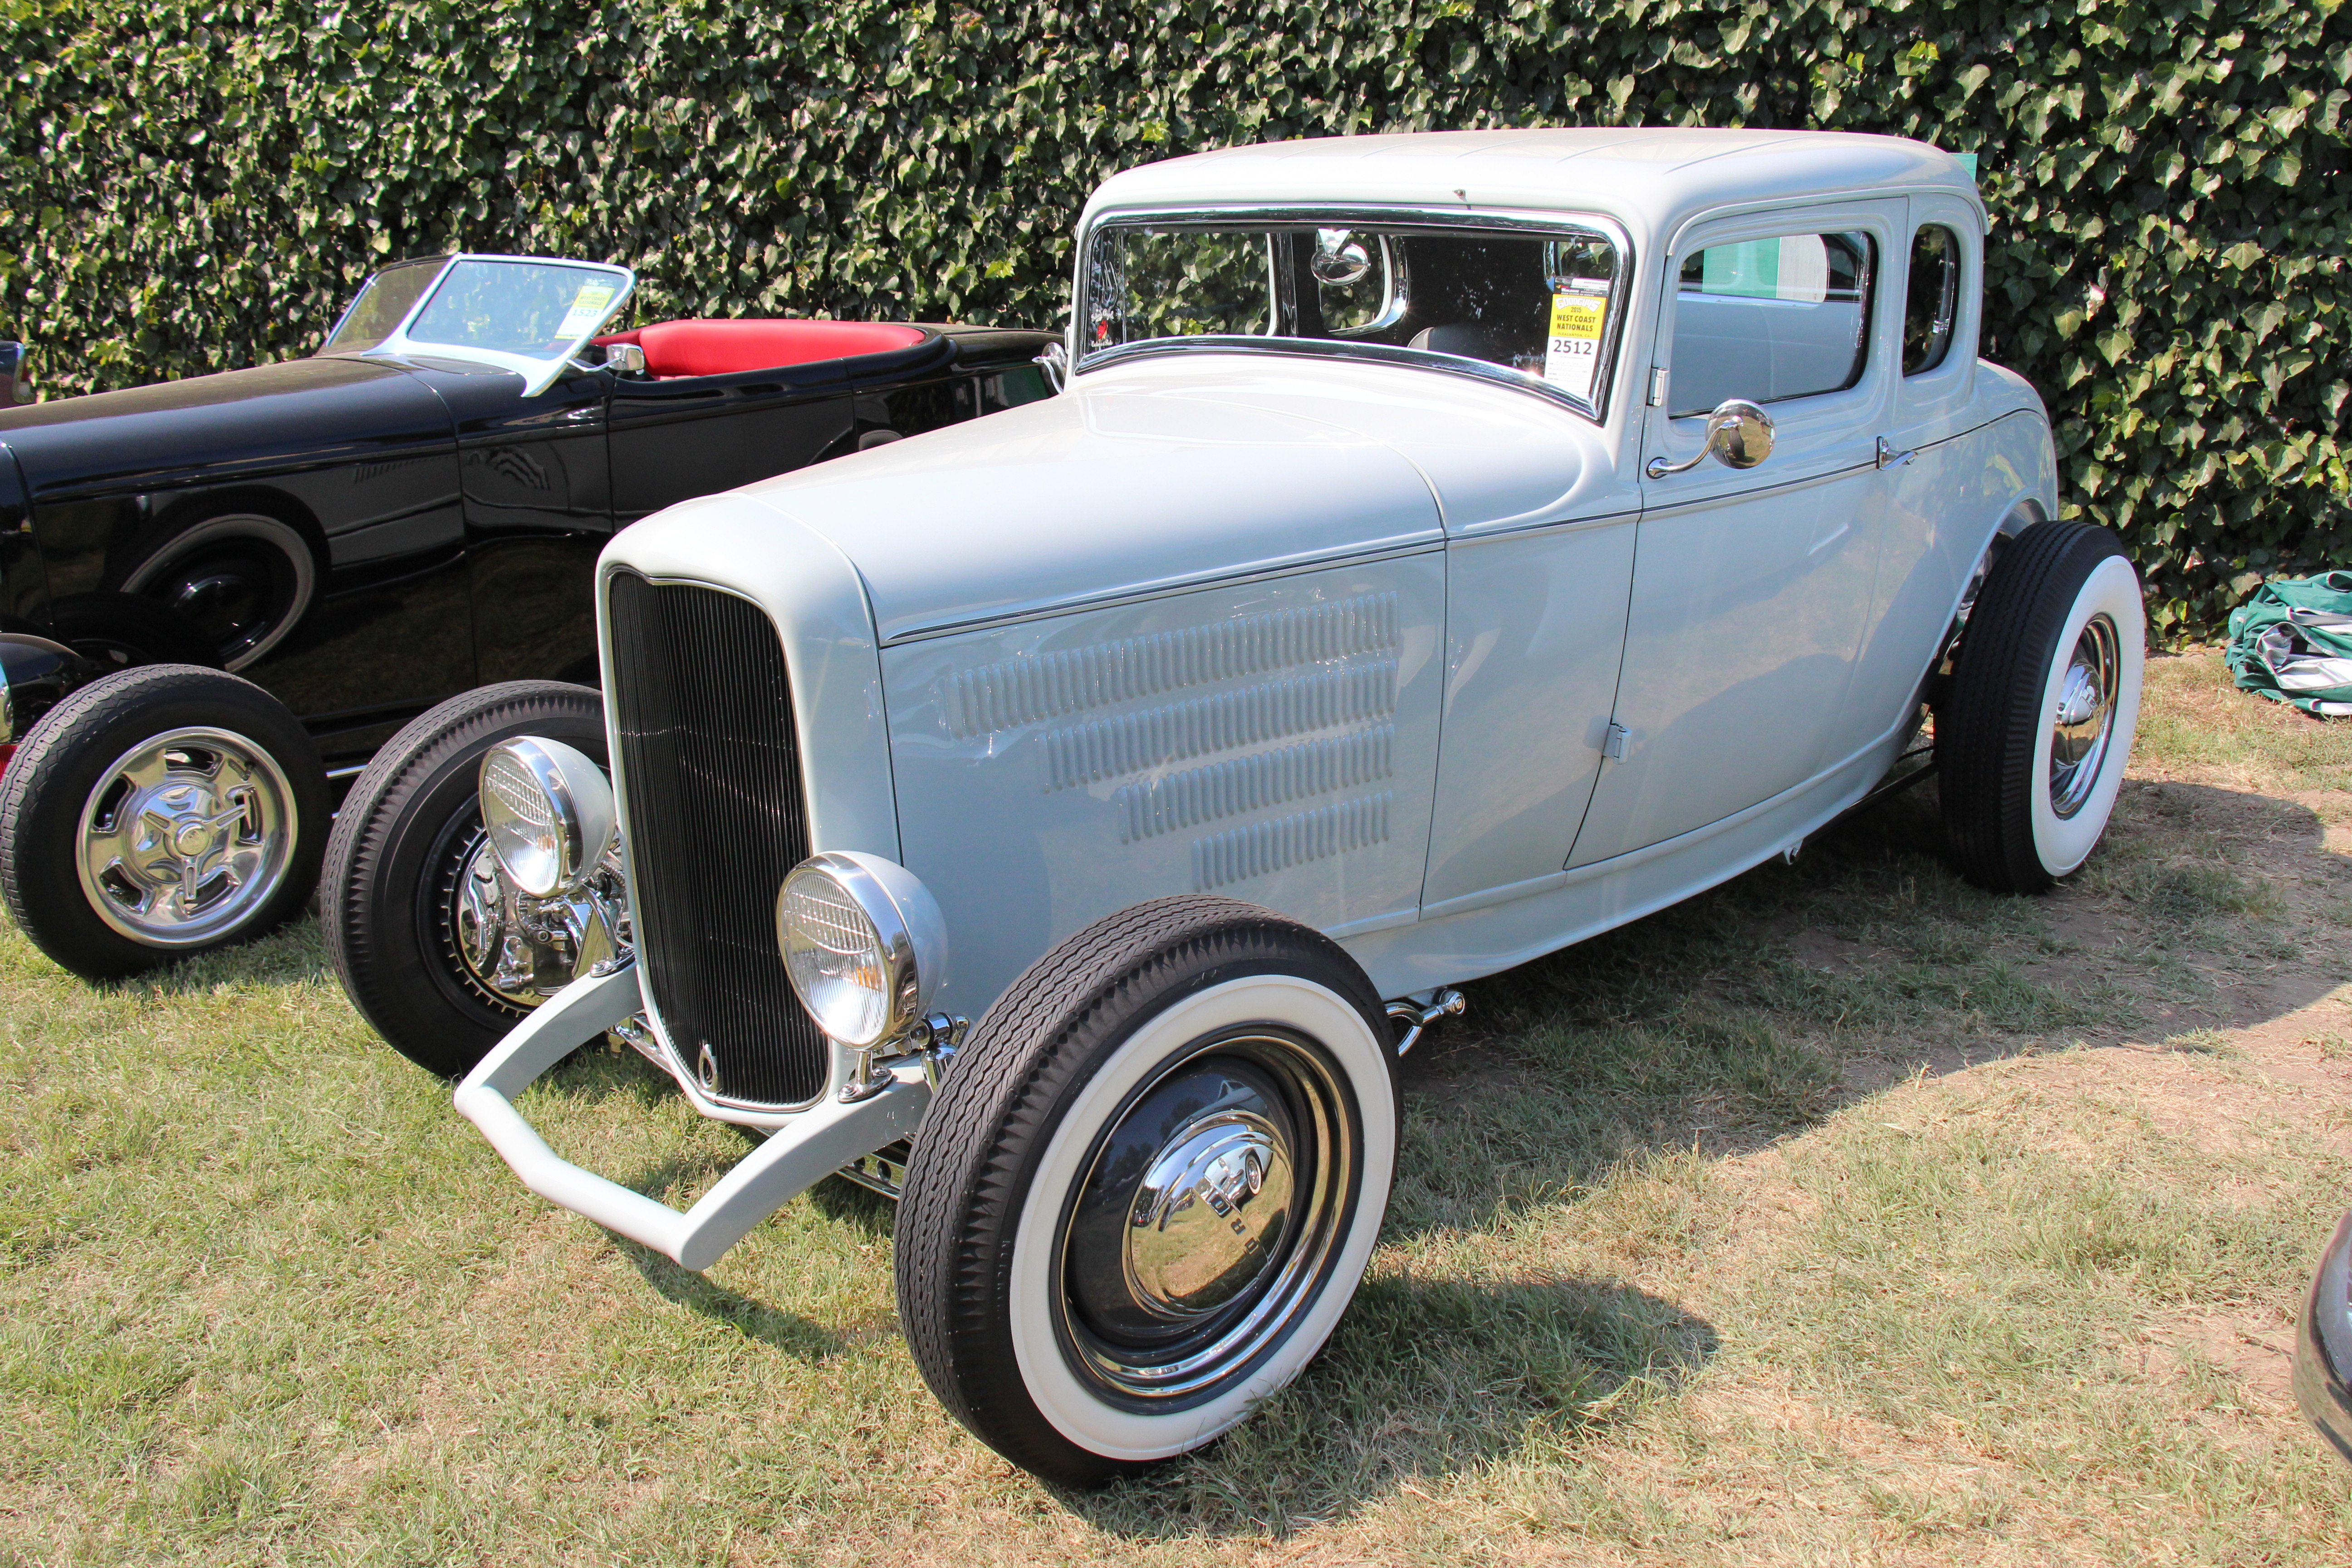 High Resolution Wallpaper | 1932 Ford Five Window Coupe 5184x3456 px